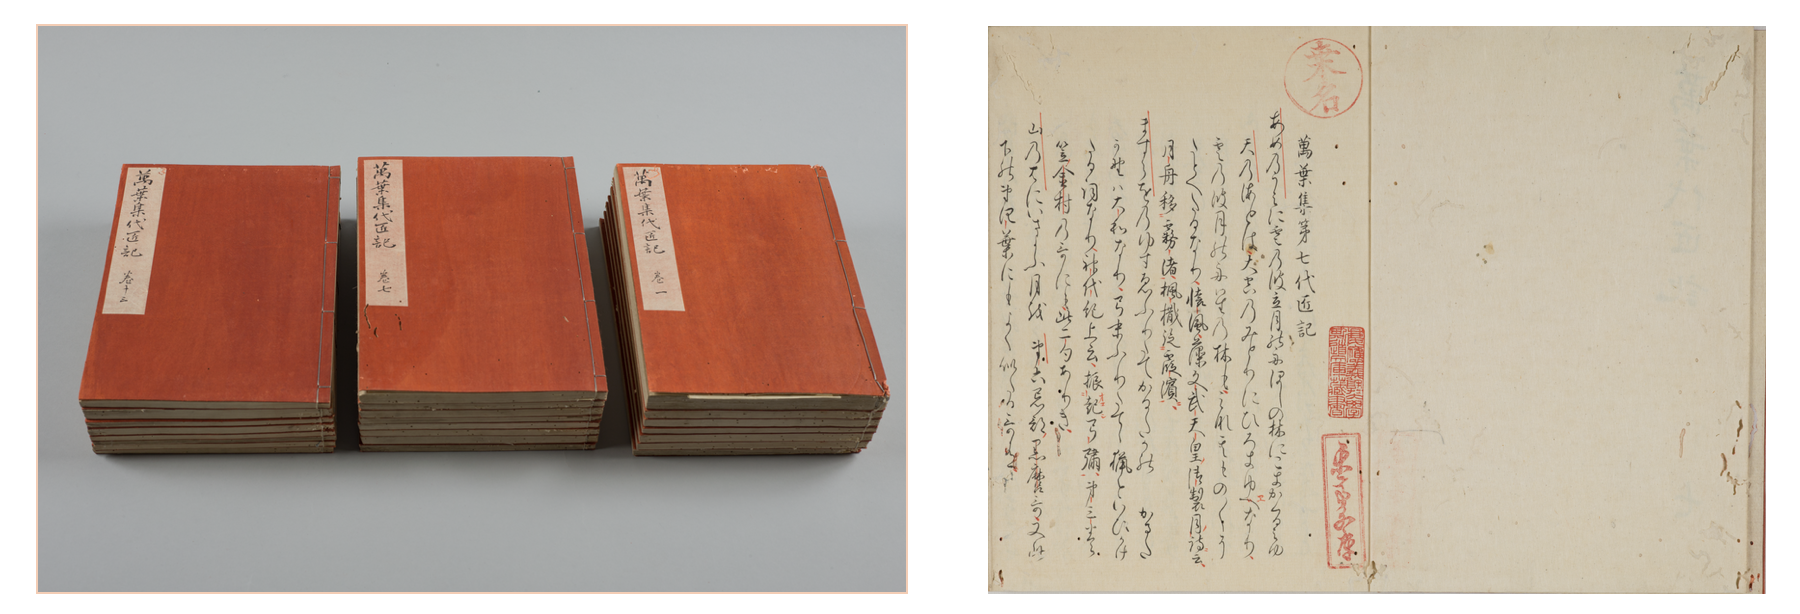 Keichū, *Man'yō daishōki*, 23 vols, formerly in Matsudaira Sadanobu's collection, Matsudaira Family, Kuwana fief